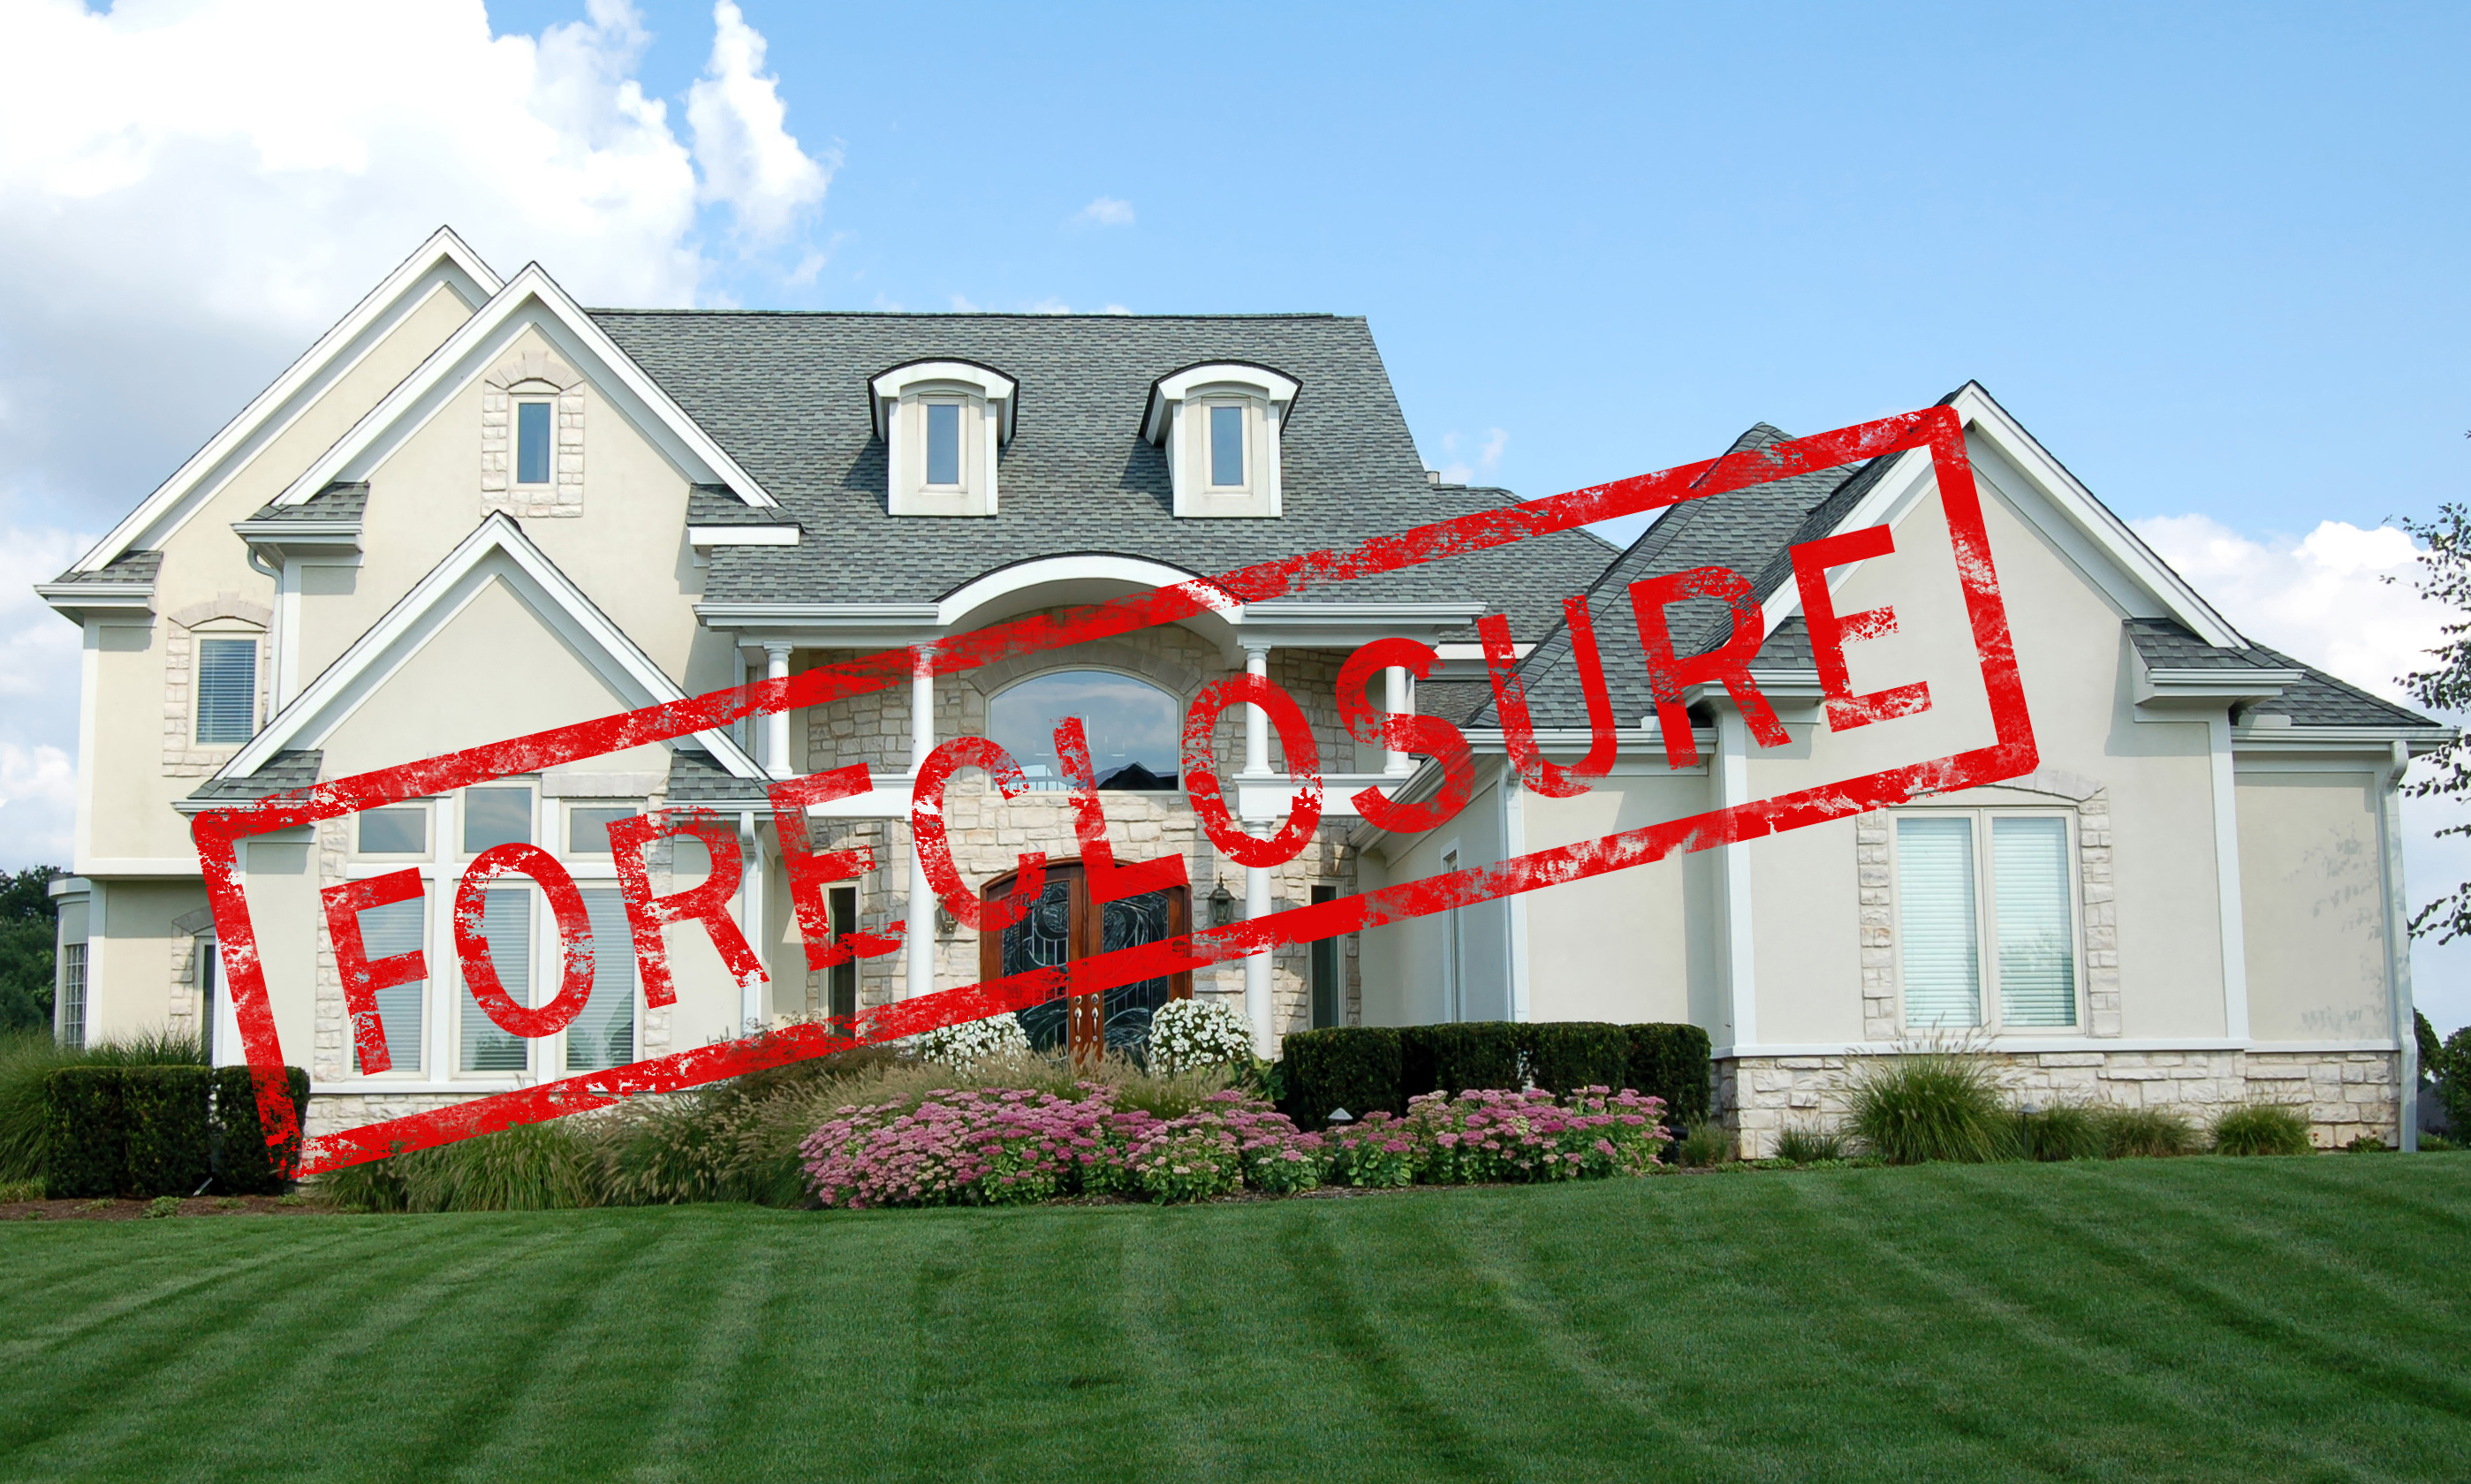 Call CMJ Appraisals & Investments LLC to order appraisals of Cobb foreclosures